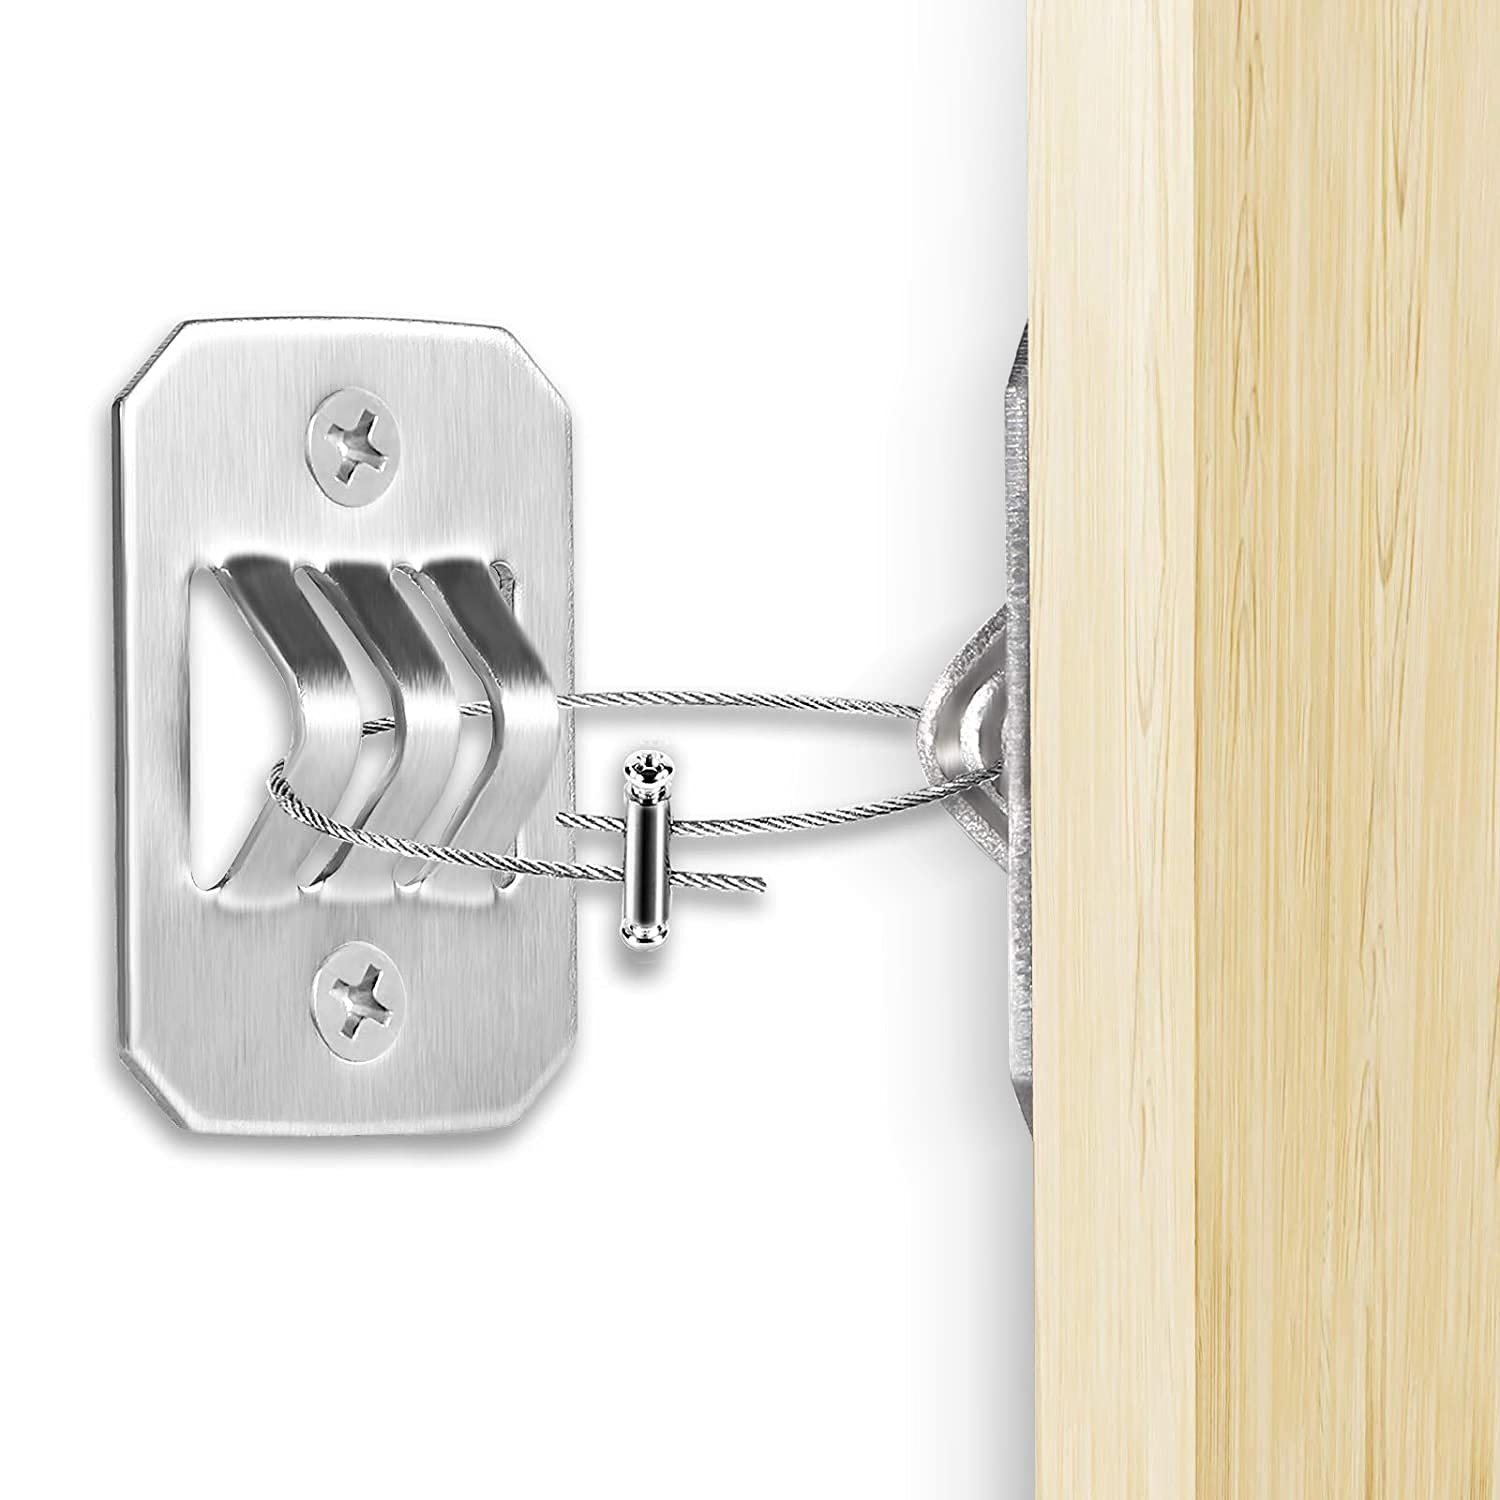 Furniture Anchors 6 Pack Metal Tip for B 67% NEW before selling ☆ OFF of fixed price Anti Straps